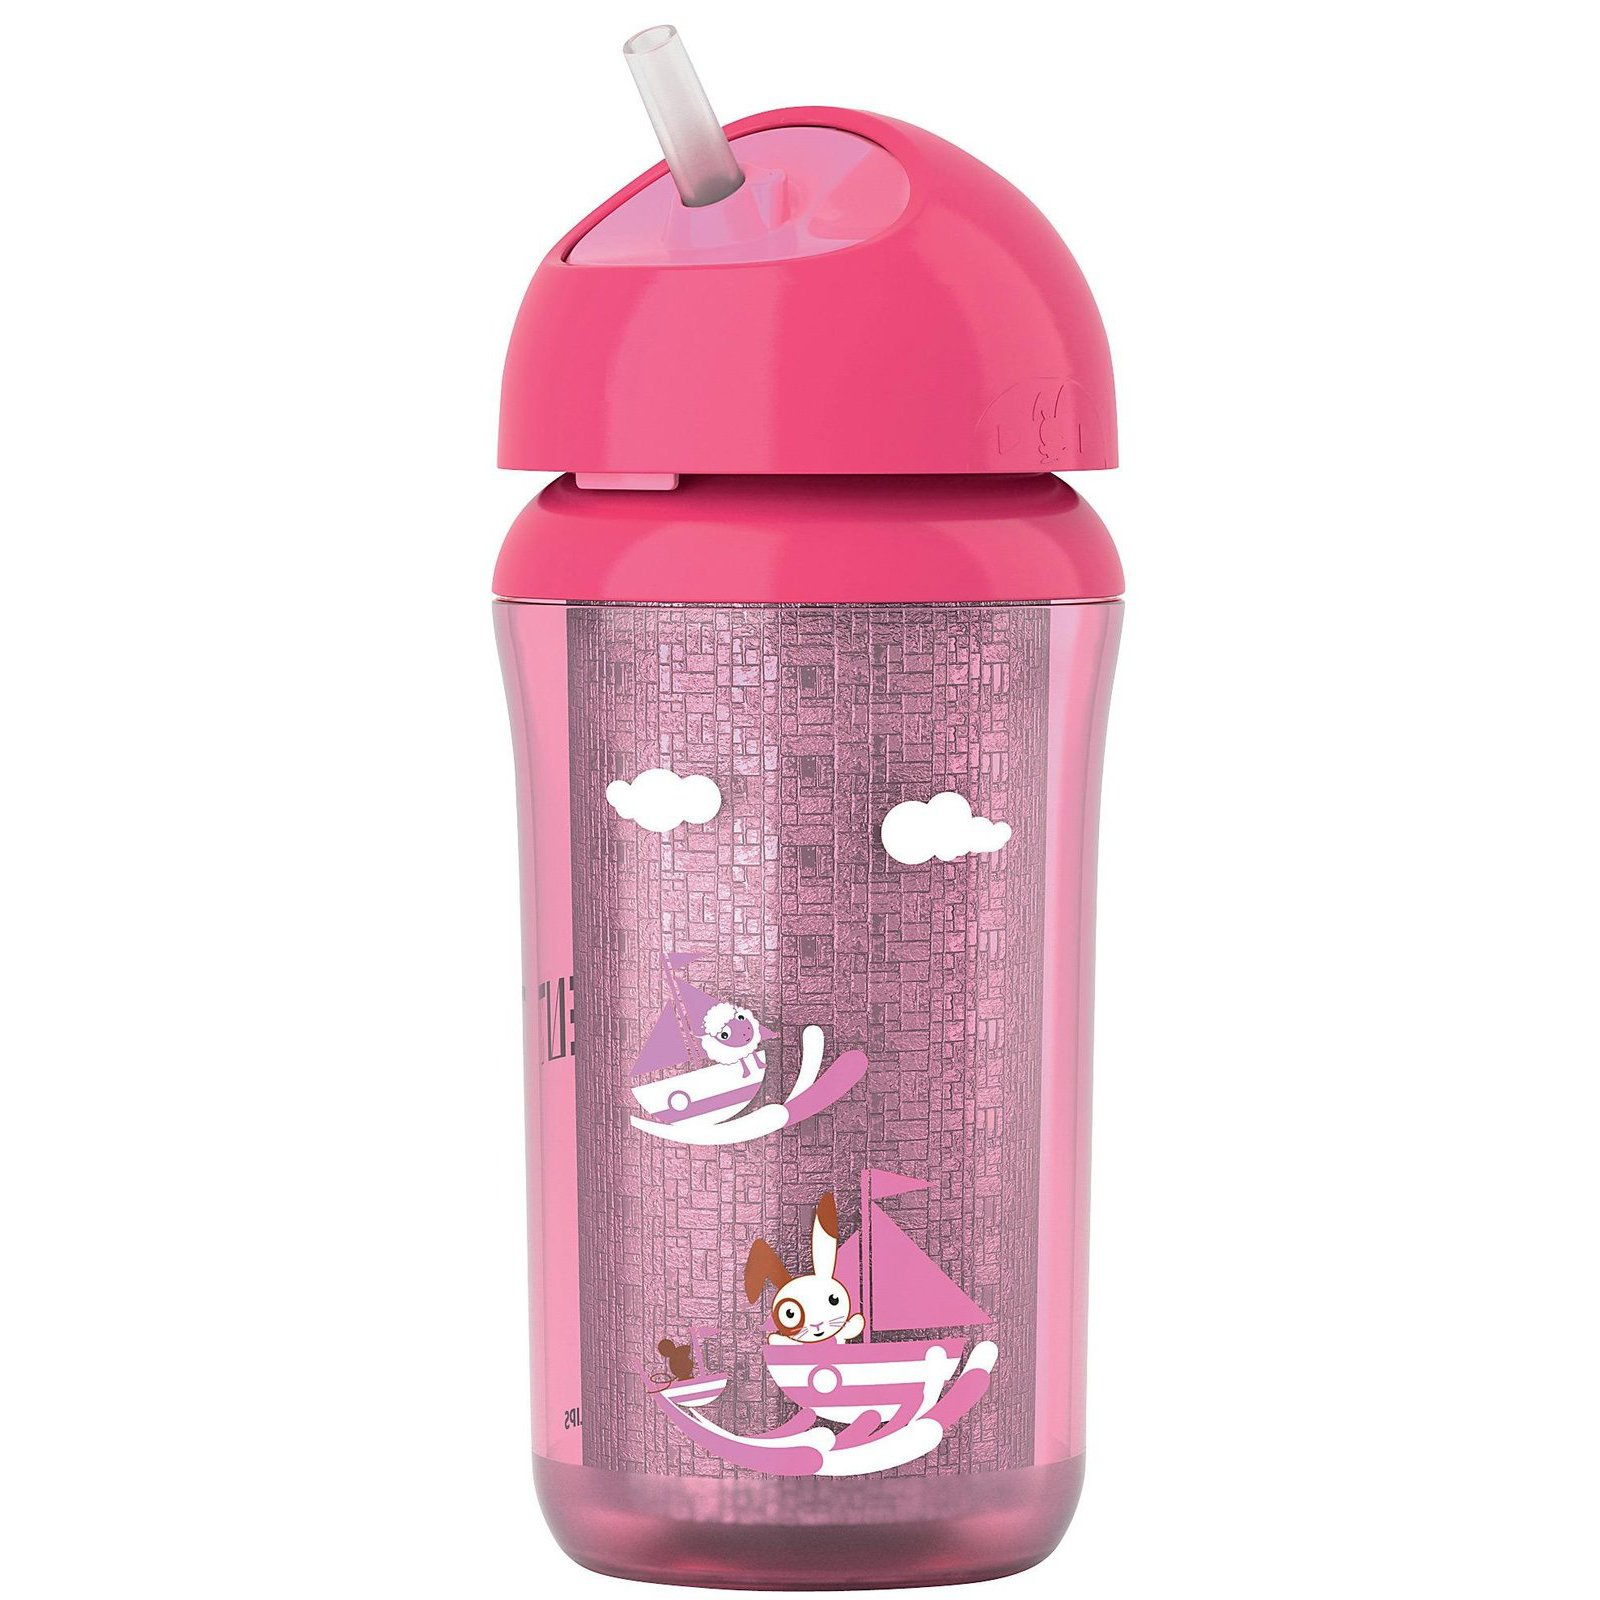 Avent Insulated Straw Cup - Pink - 9 oz